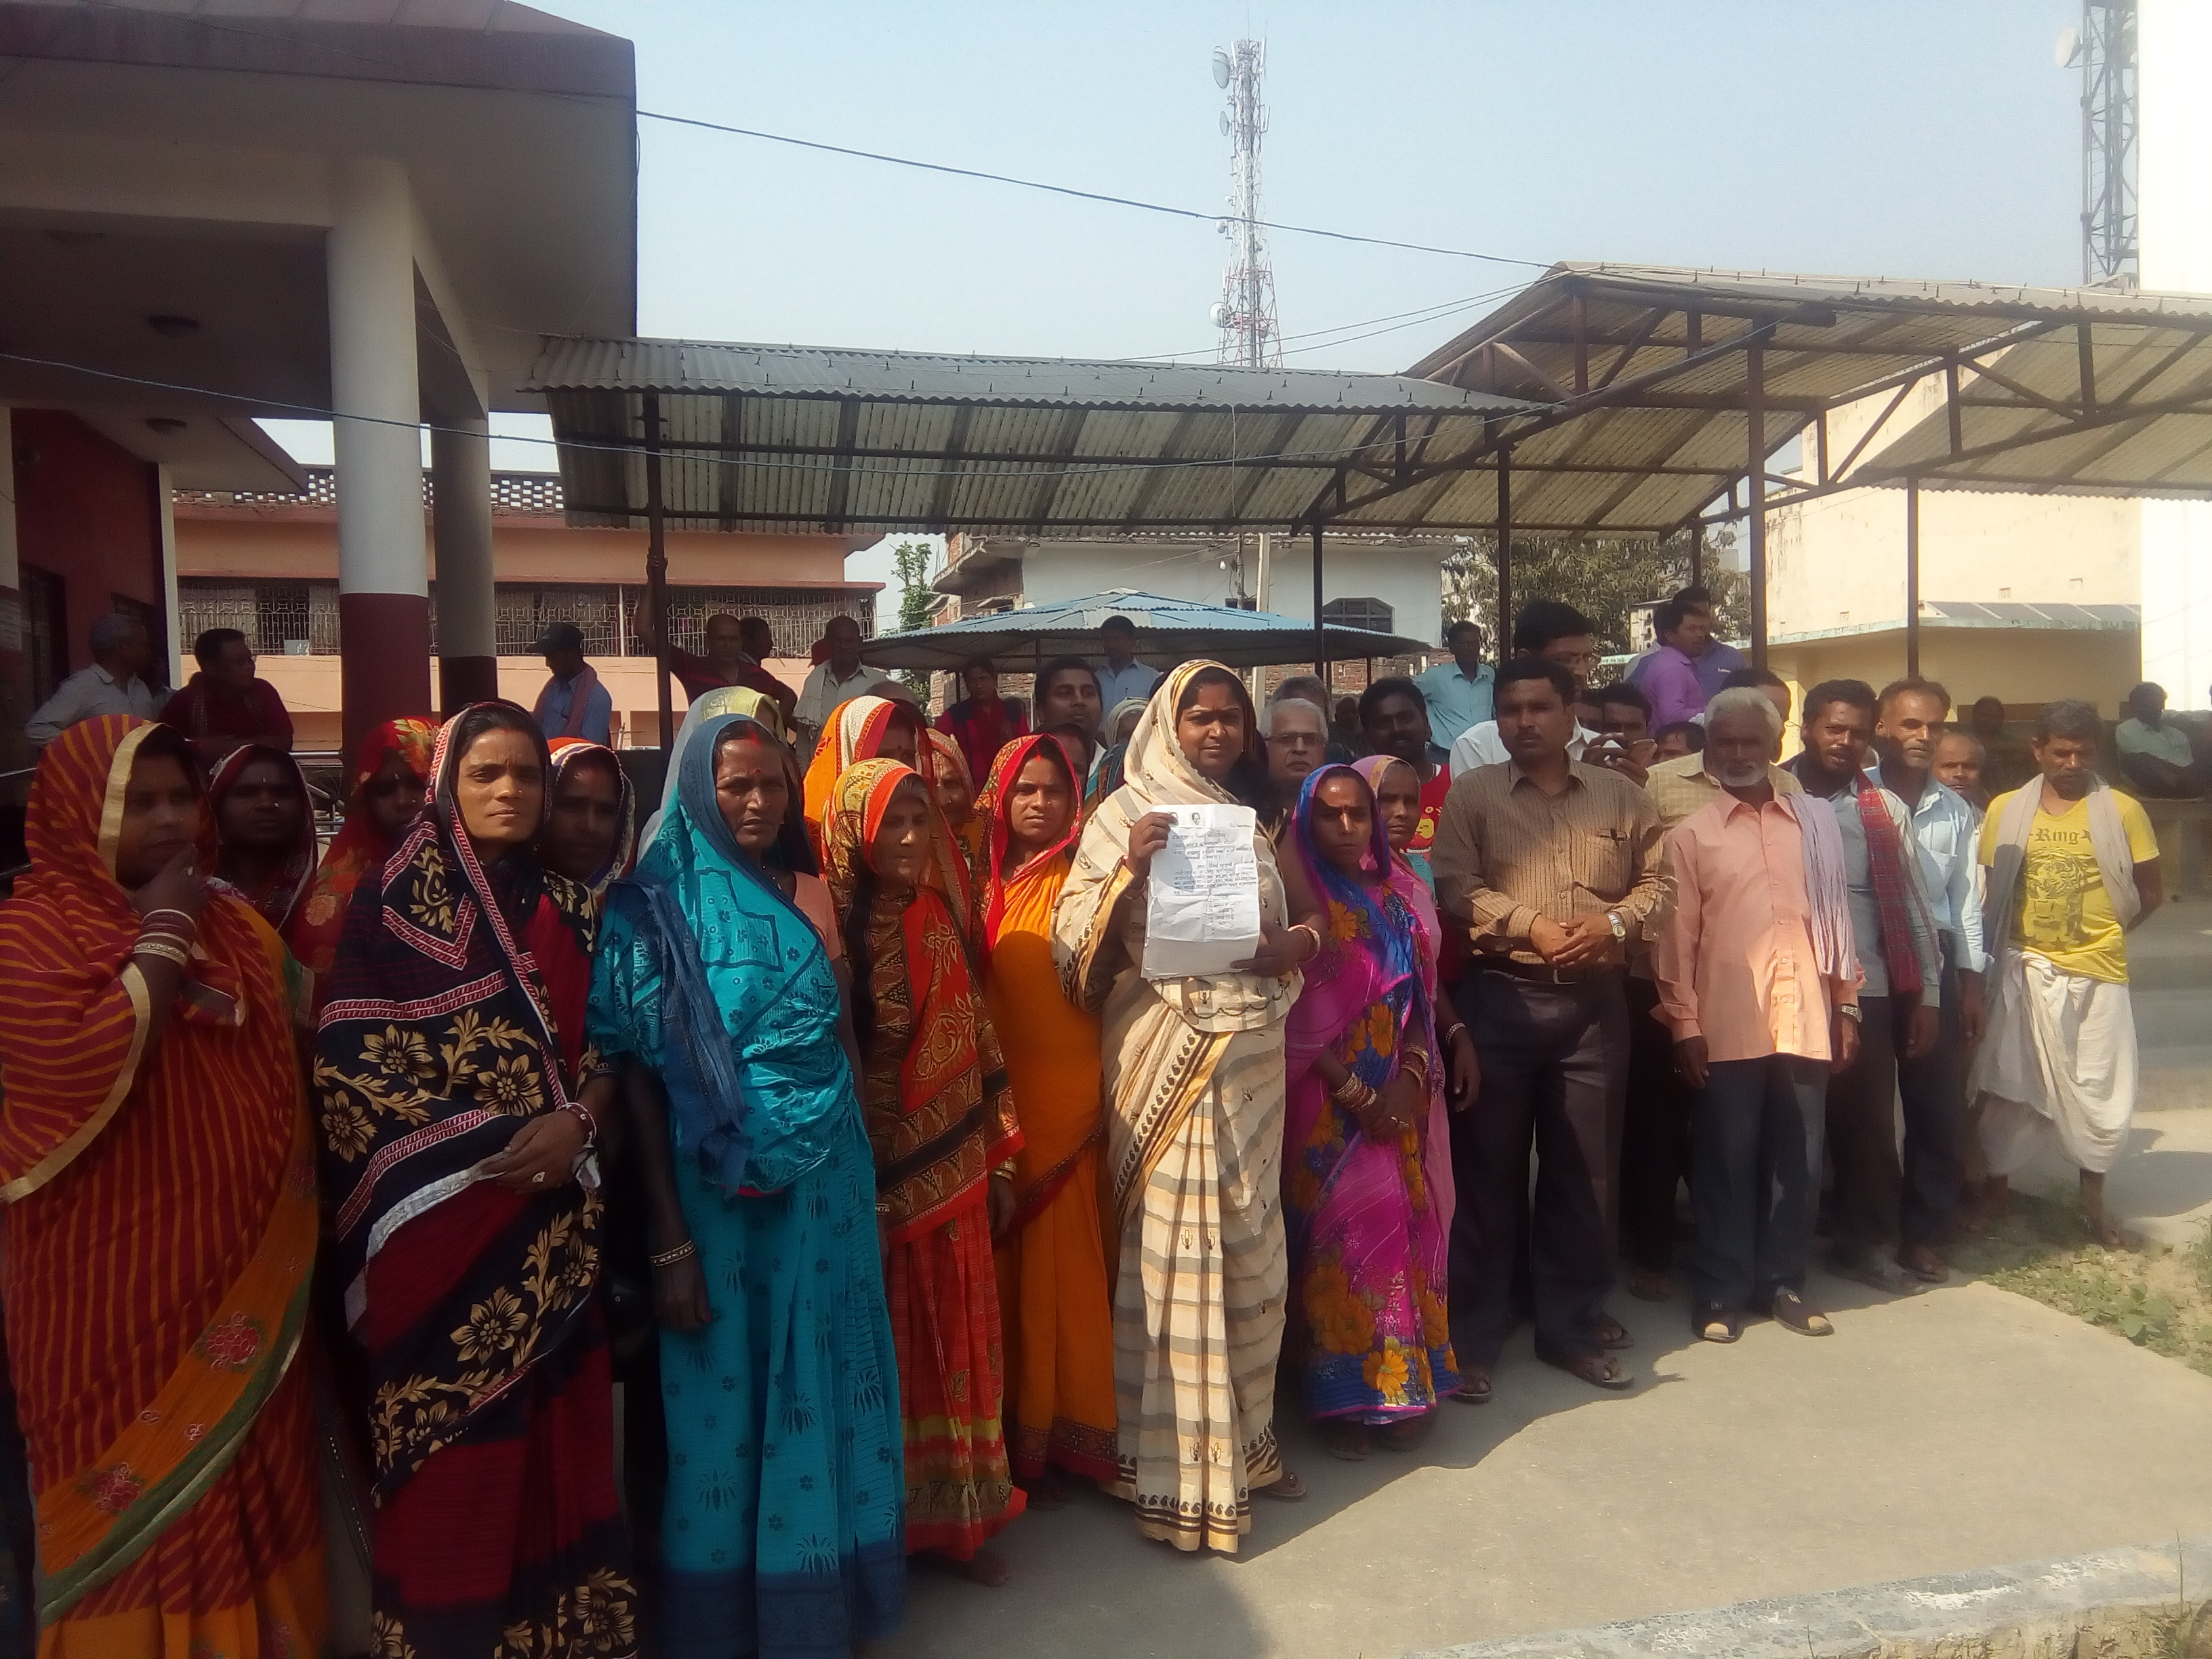 Flood Victims of Badharwa, Durga Bhagawati Rural Municipality-5 in Rautahat district reach the District Administration Office, Gaur to draw CDOu2019s attention after being deprived of compensation and government allocated relief amount, on Wednesday, April 4, 2018. Photo: Prabhat Kumar Jha